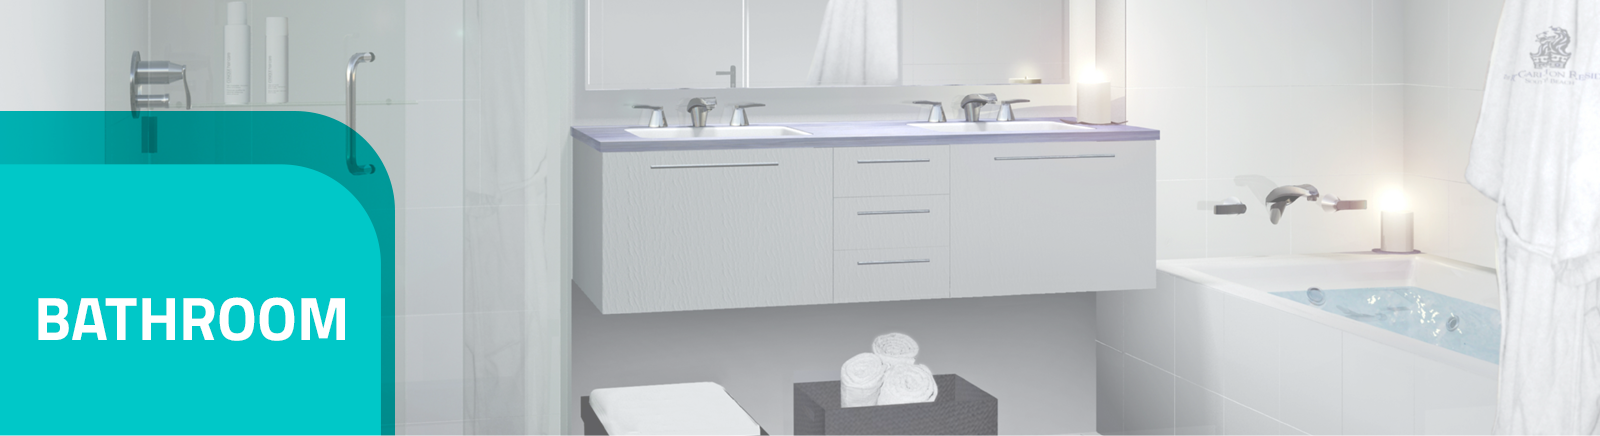 Bathroom inspirations and furniture